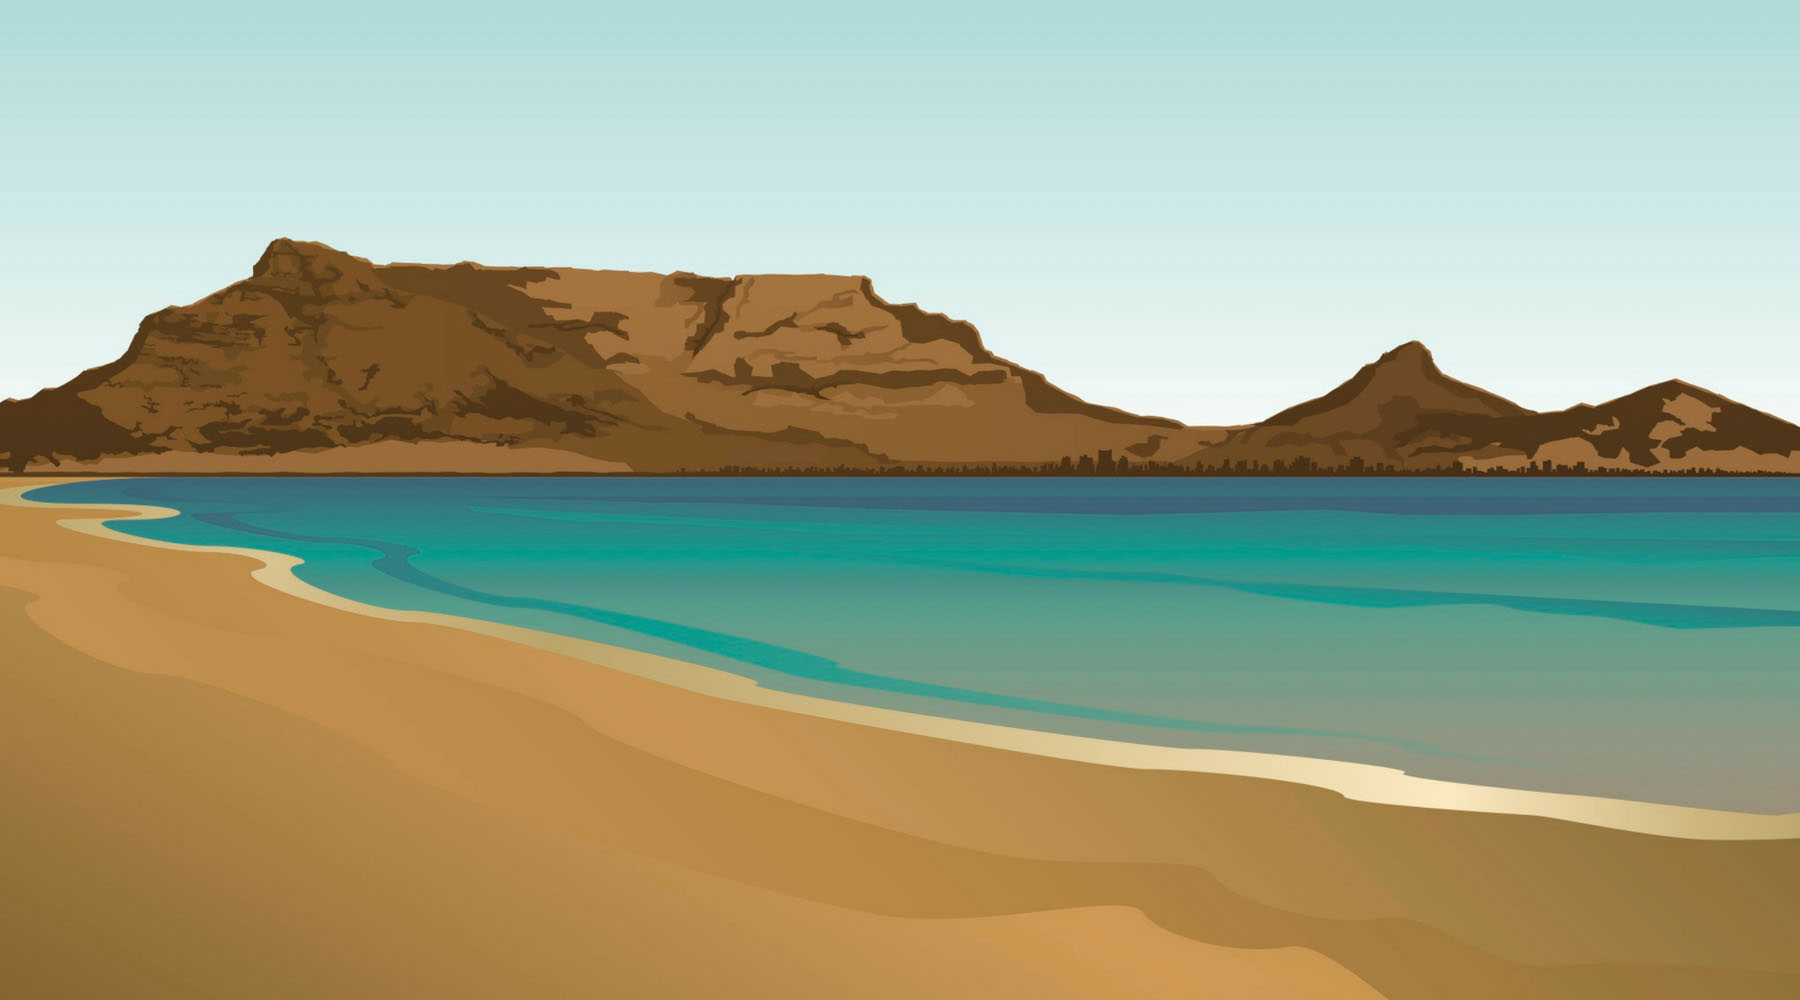 An illustration of Table Mountain in Cape Town, South Africa.